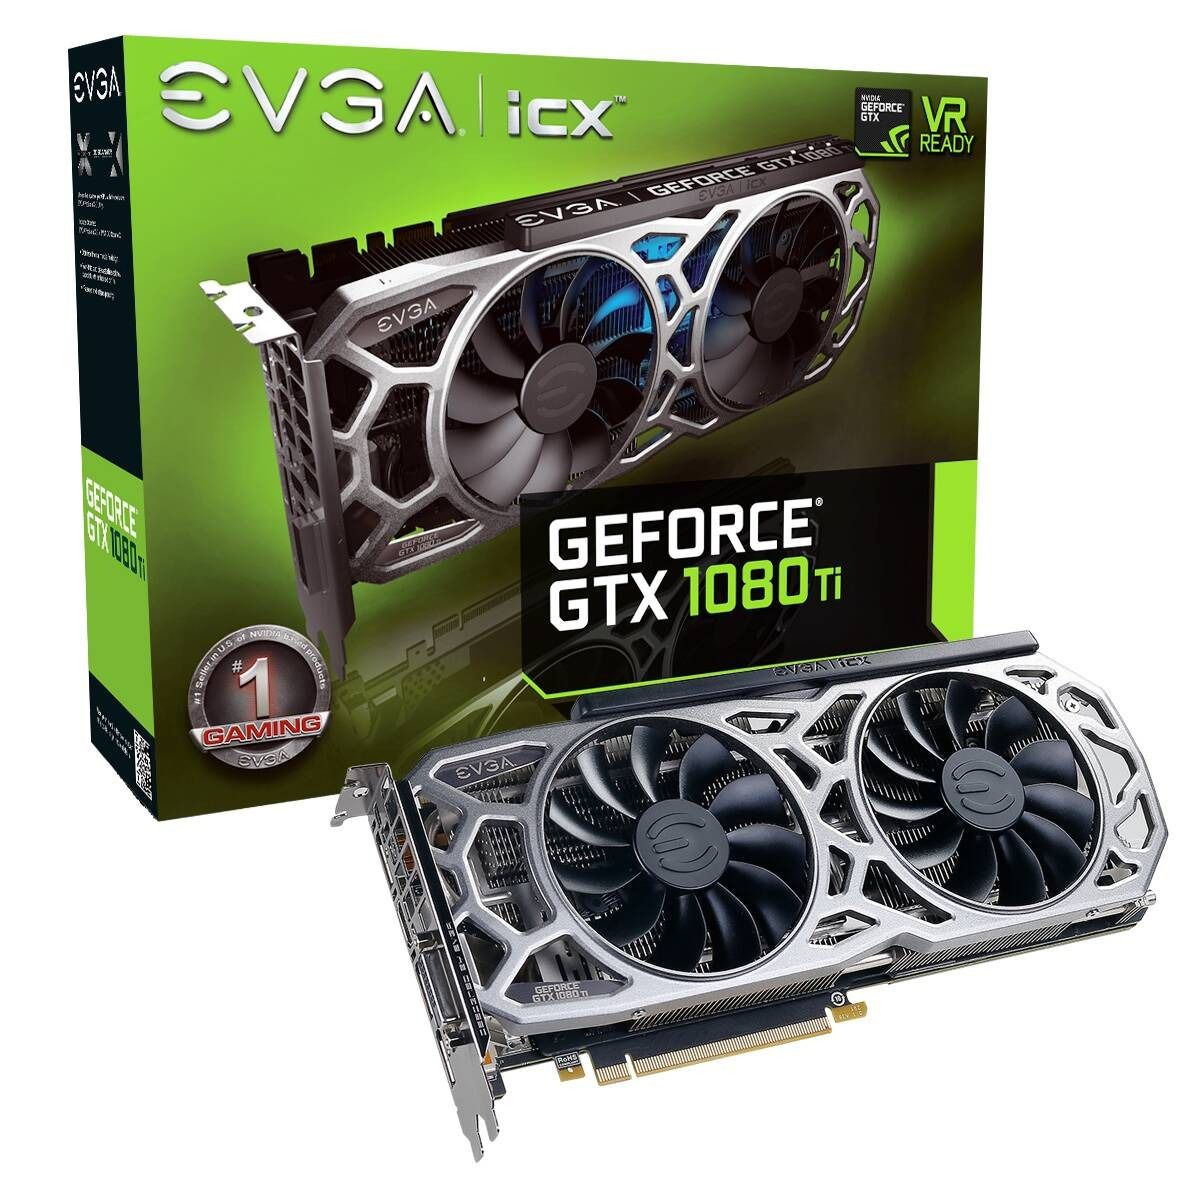 PLACA DE VIDEO EVGA GEFORCE GTX 1080 TI 11GB GDDR5X 352BIT REF ICX, 11G-P4-6591-KR